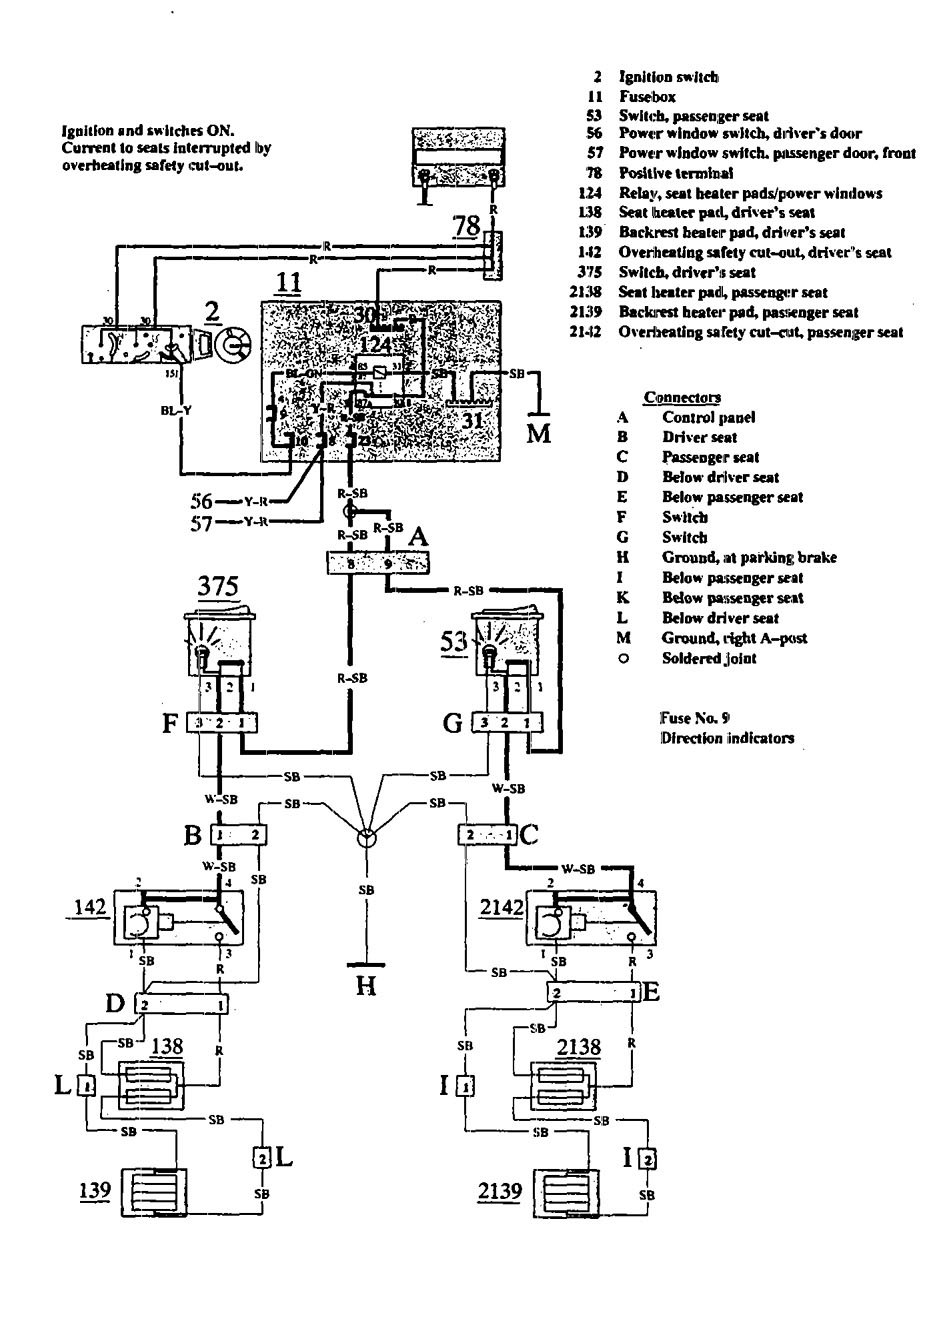 2002 Jeep Grand Cherokee Heated Seat Wiring Diagram : 51